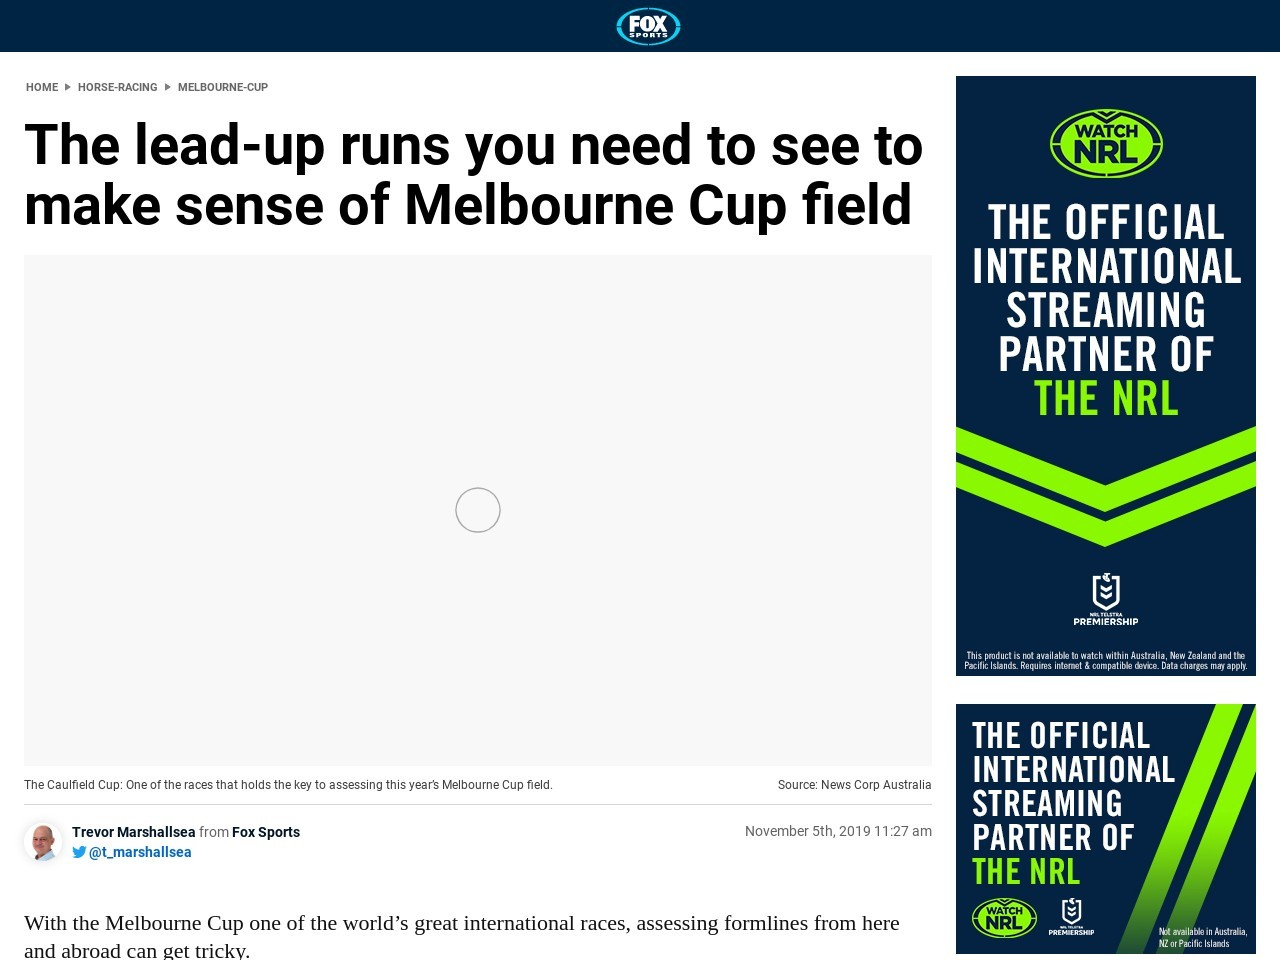 The lead-up runs you need to see to make sense of Melbourne Cup field